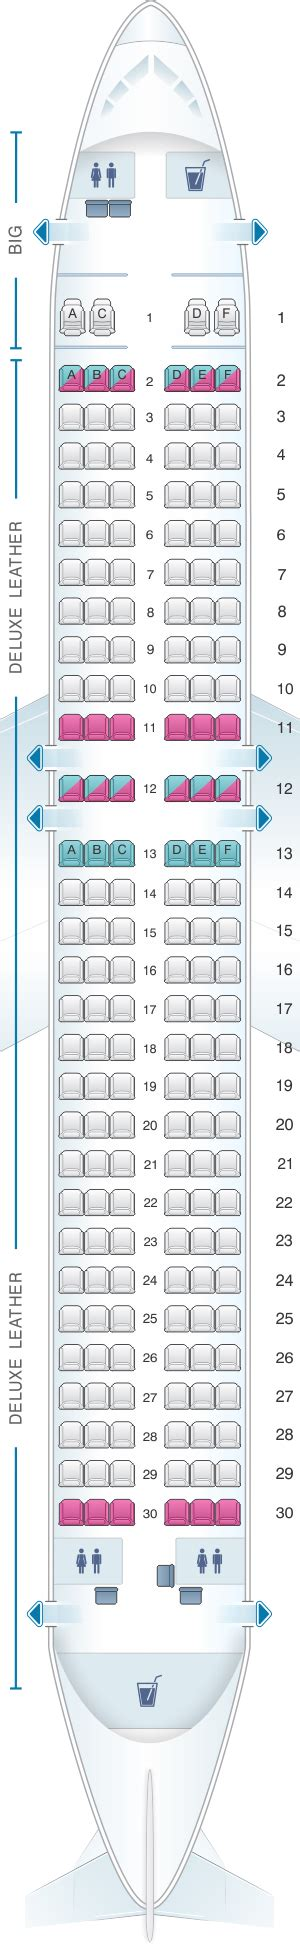 plan des sieges airbus a320 seat map spirit airlines airbus a320 178pax seatmaestro